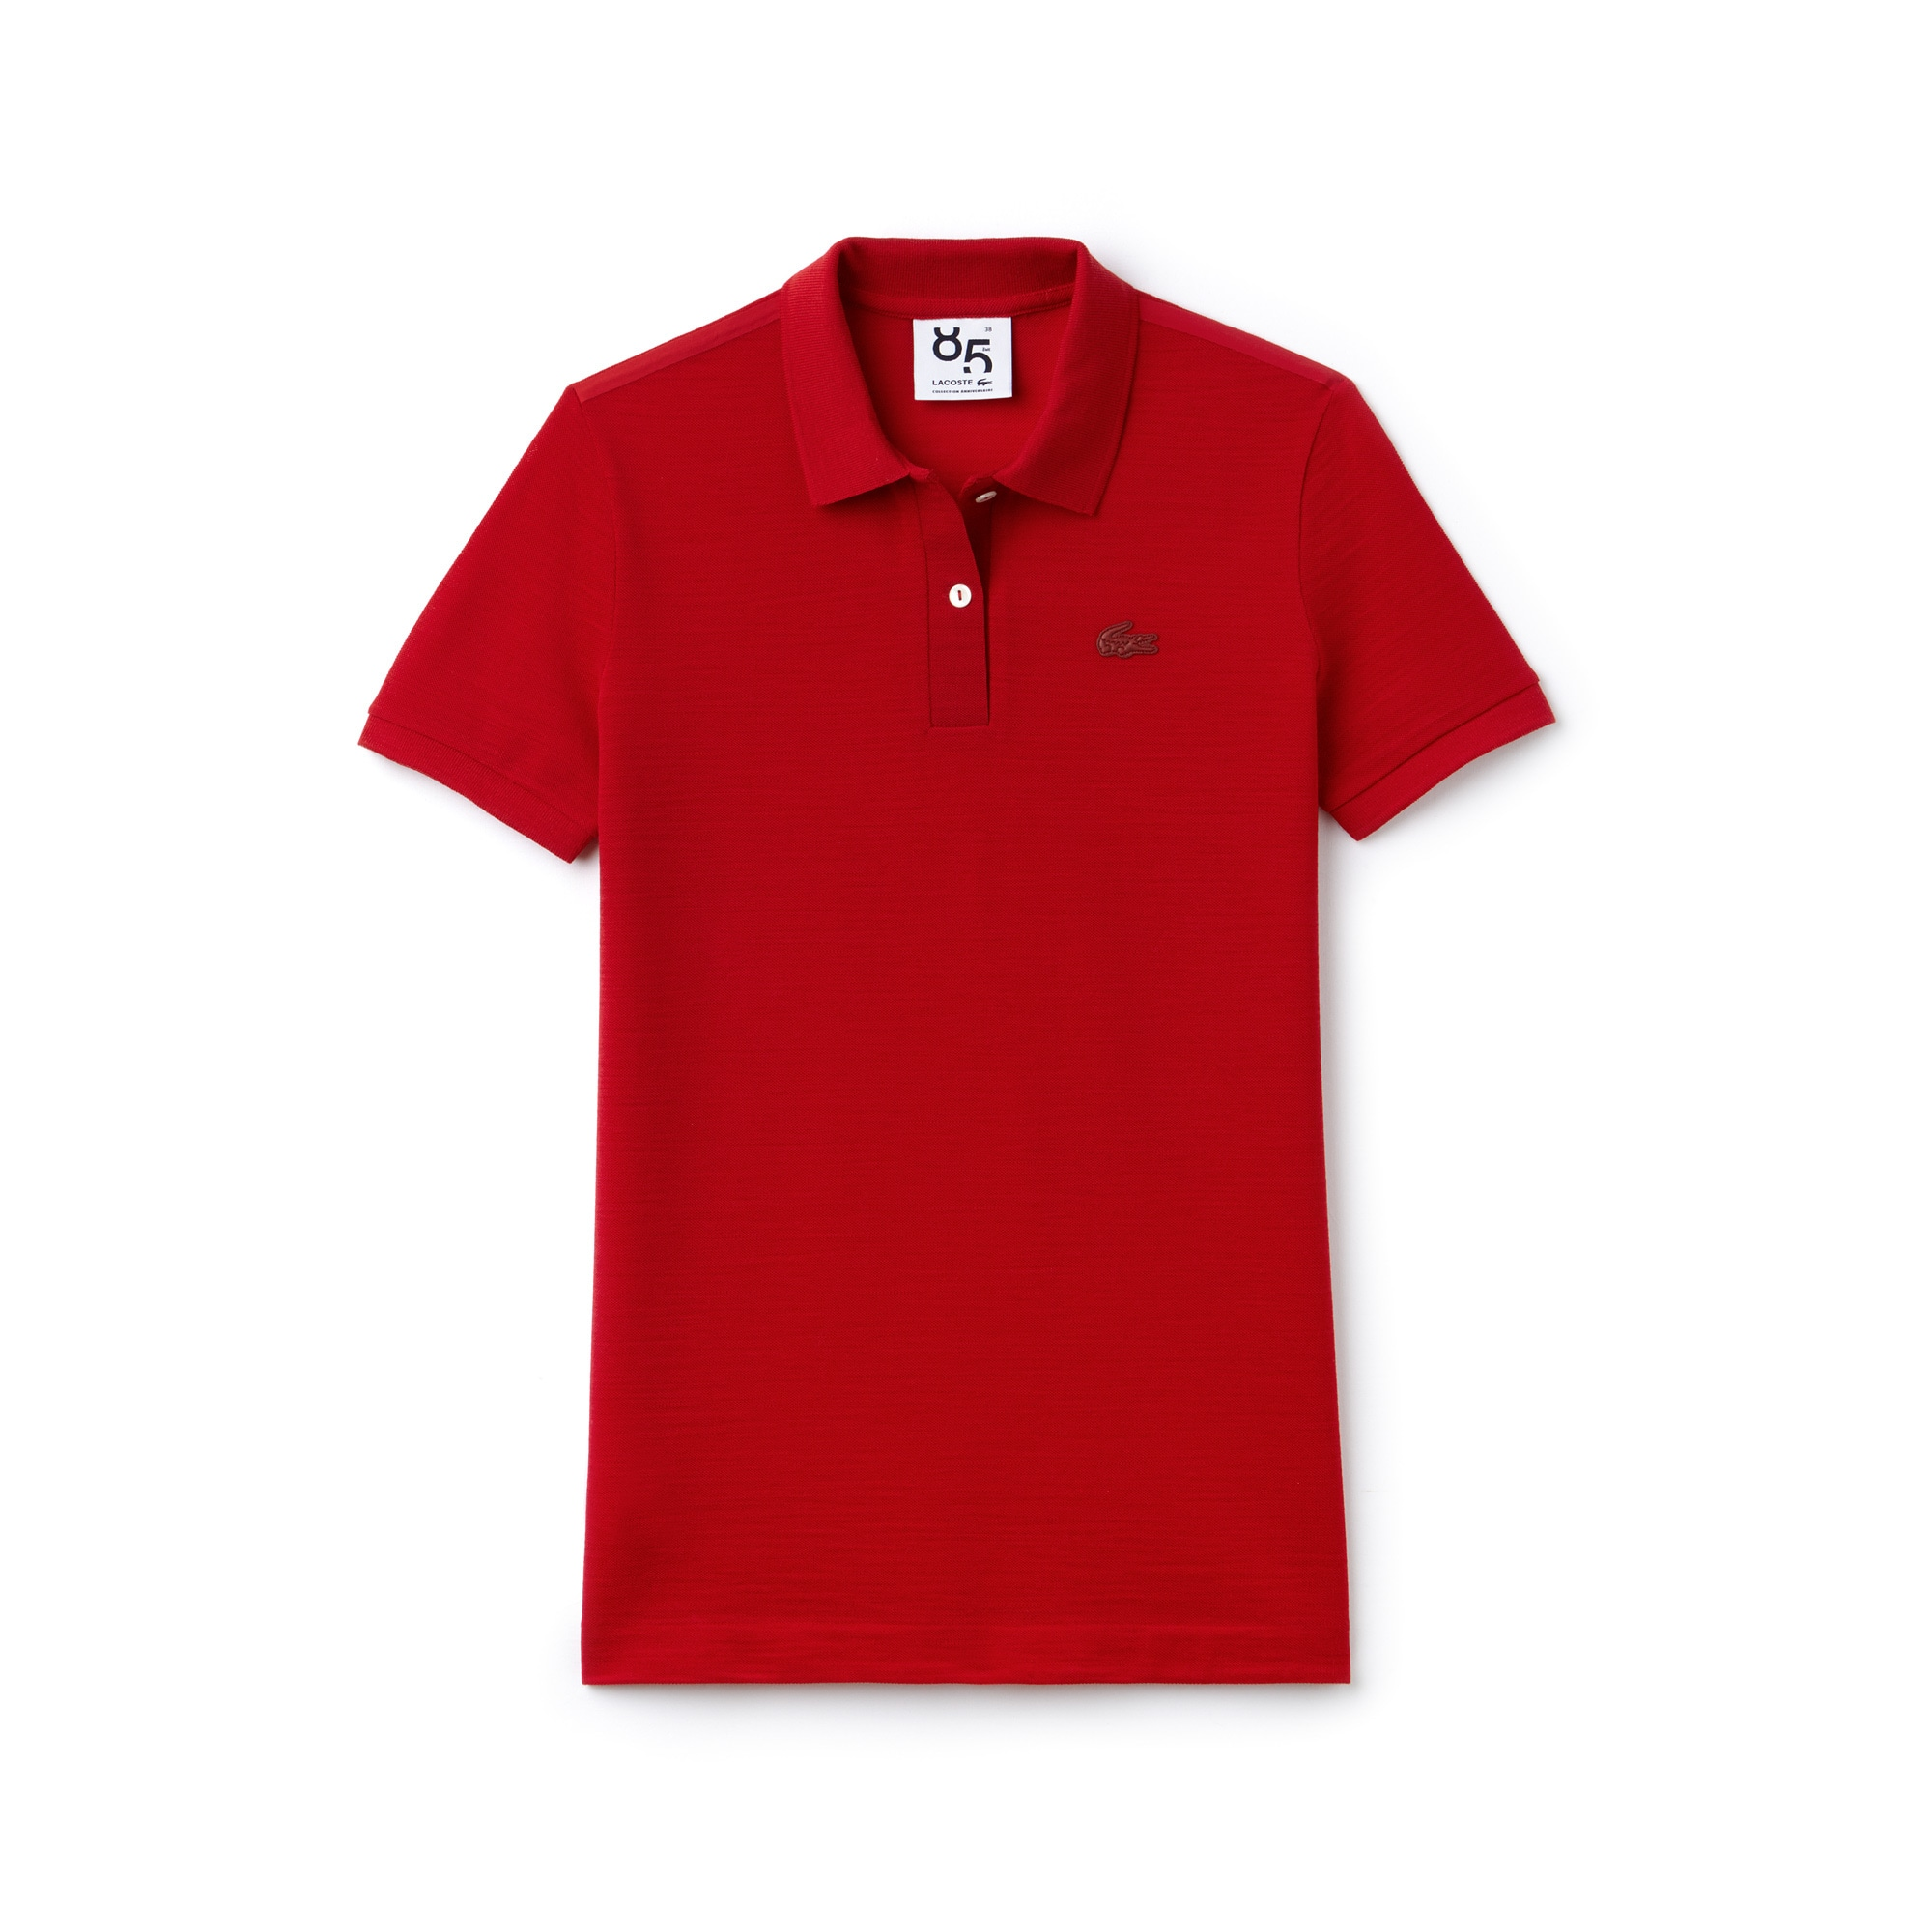 Women's Lacoste Limited Edition Anniversaire 85 Ans Classic Fit Wool Piqué Polo